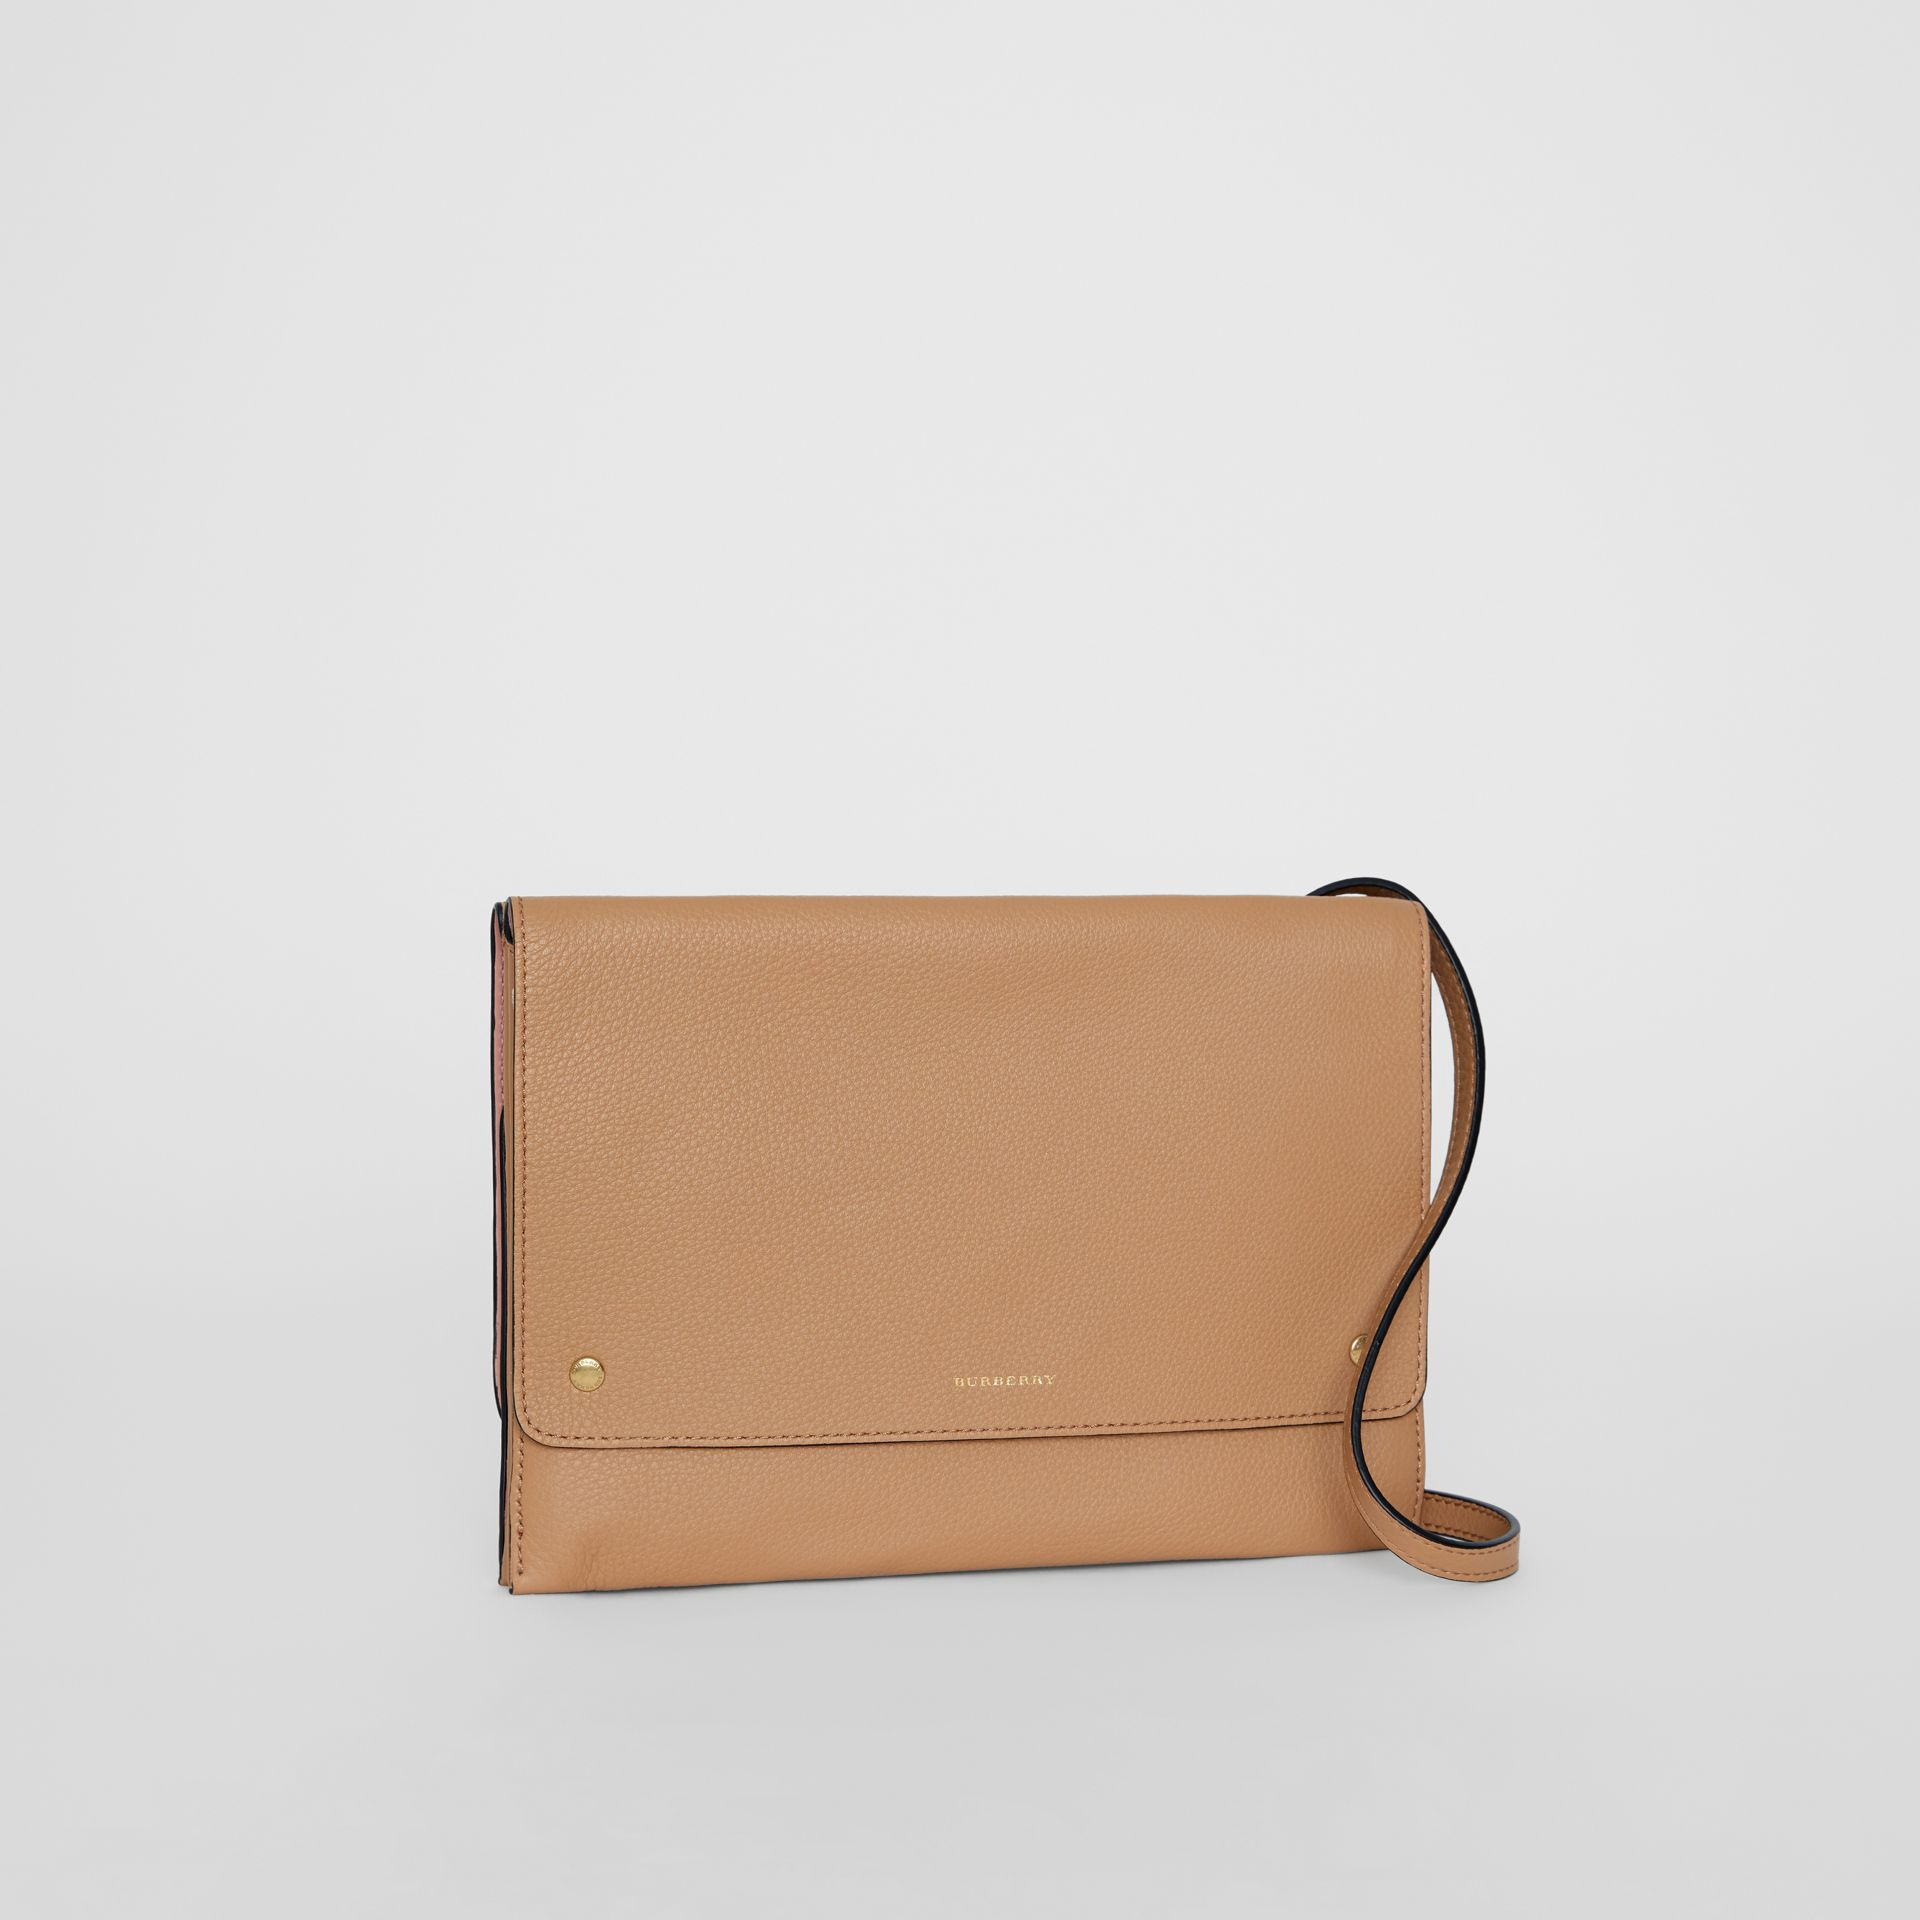 Leather Pouch with Detachable Strap in Light Camel - Women | Burberry United States - gallery image 6